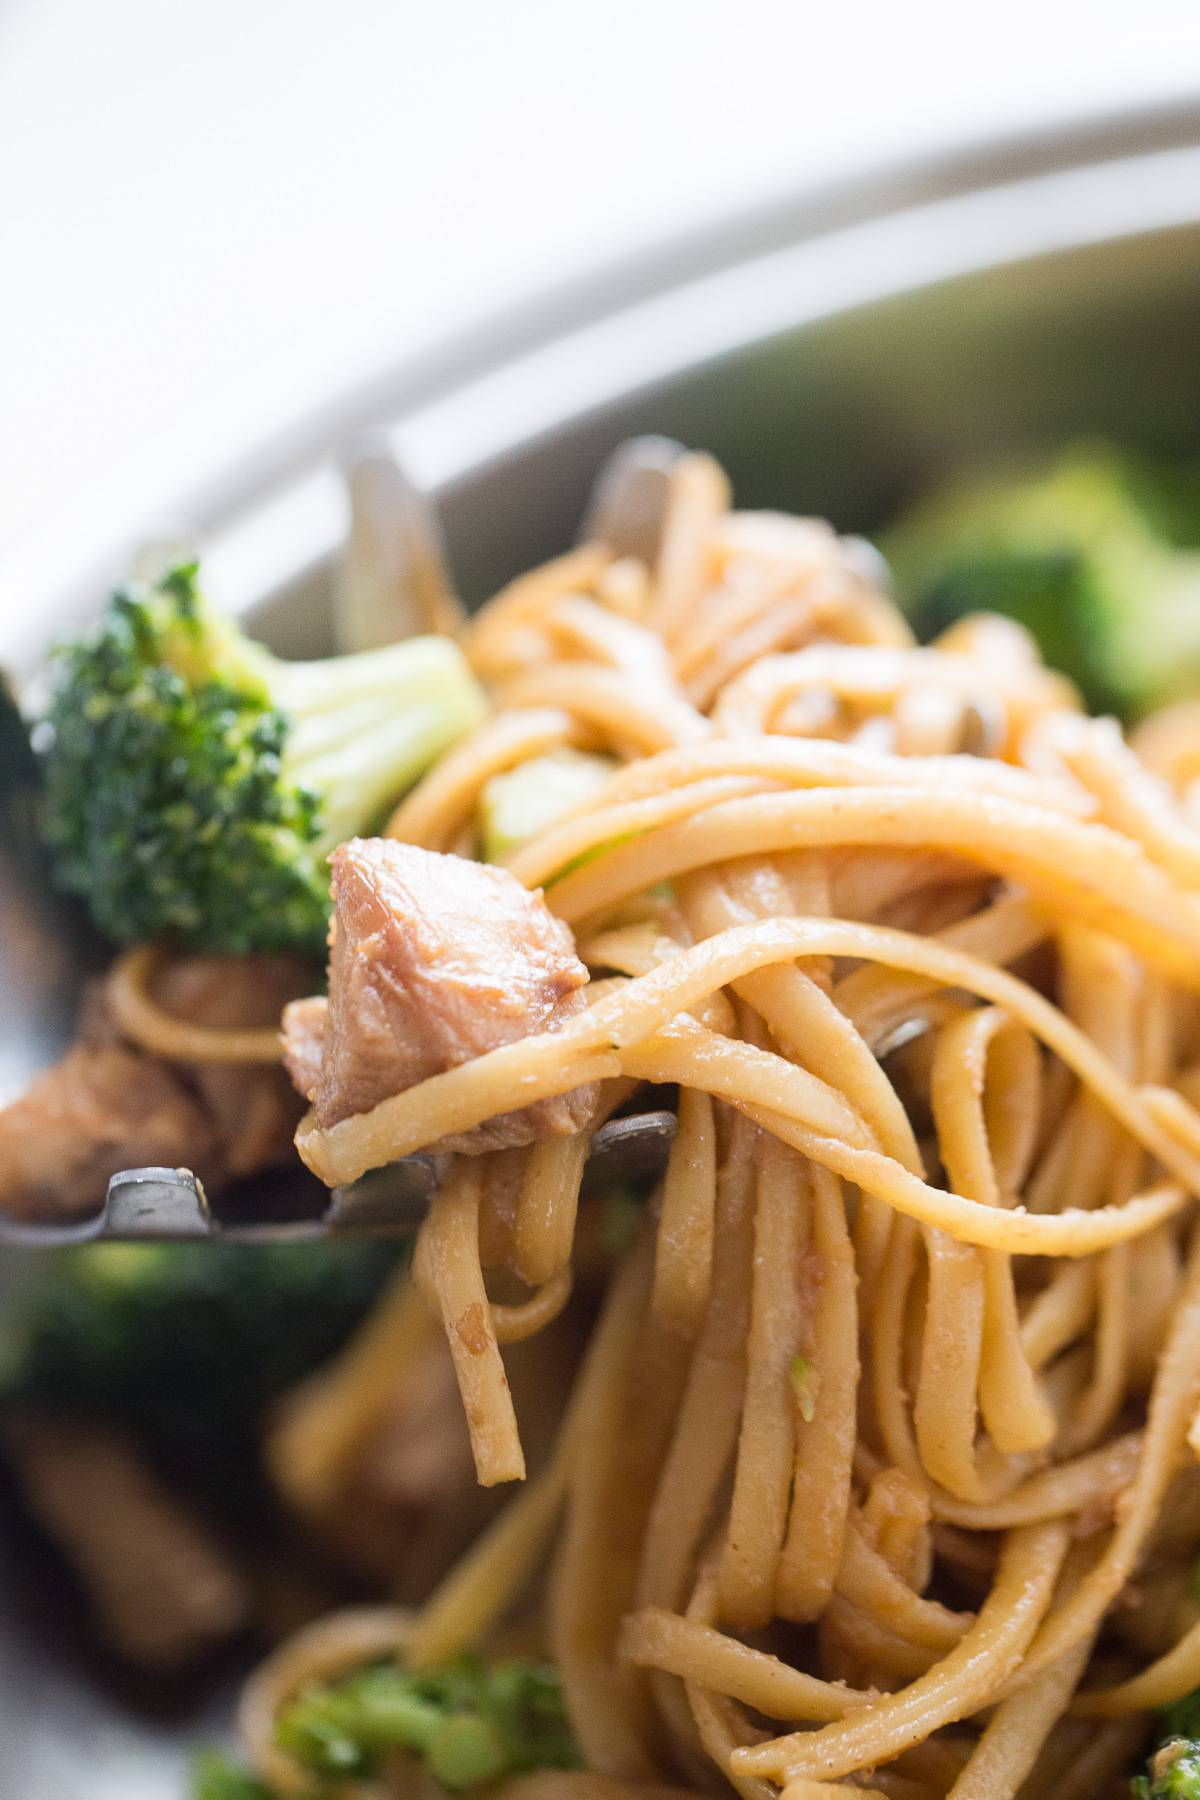 This chicken and broccoli stir fry is better than take out! You control the ingredients!